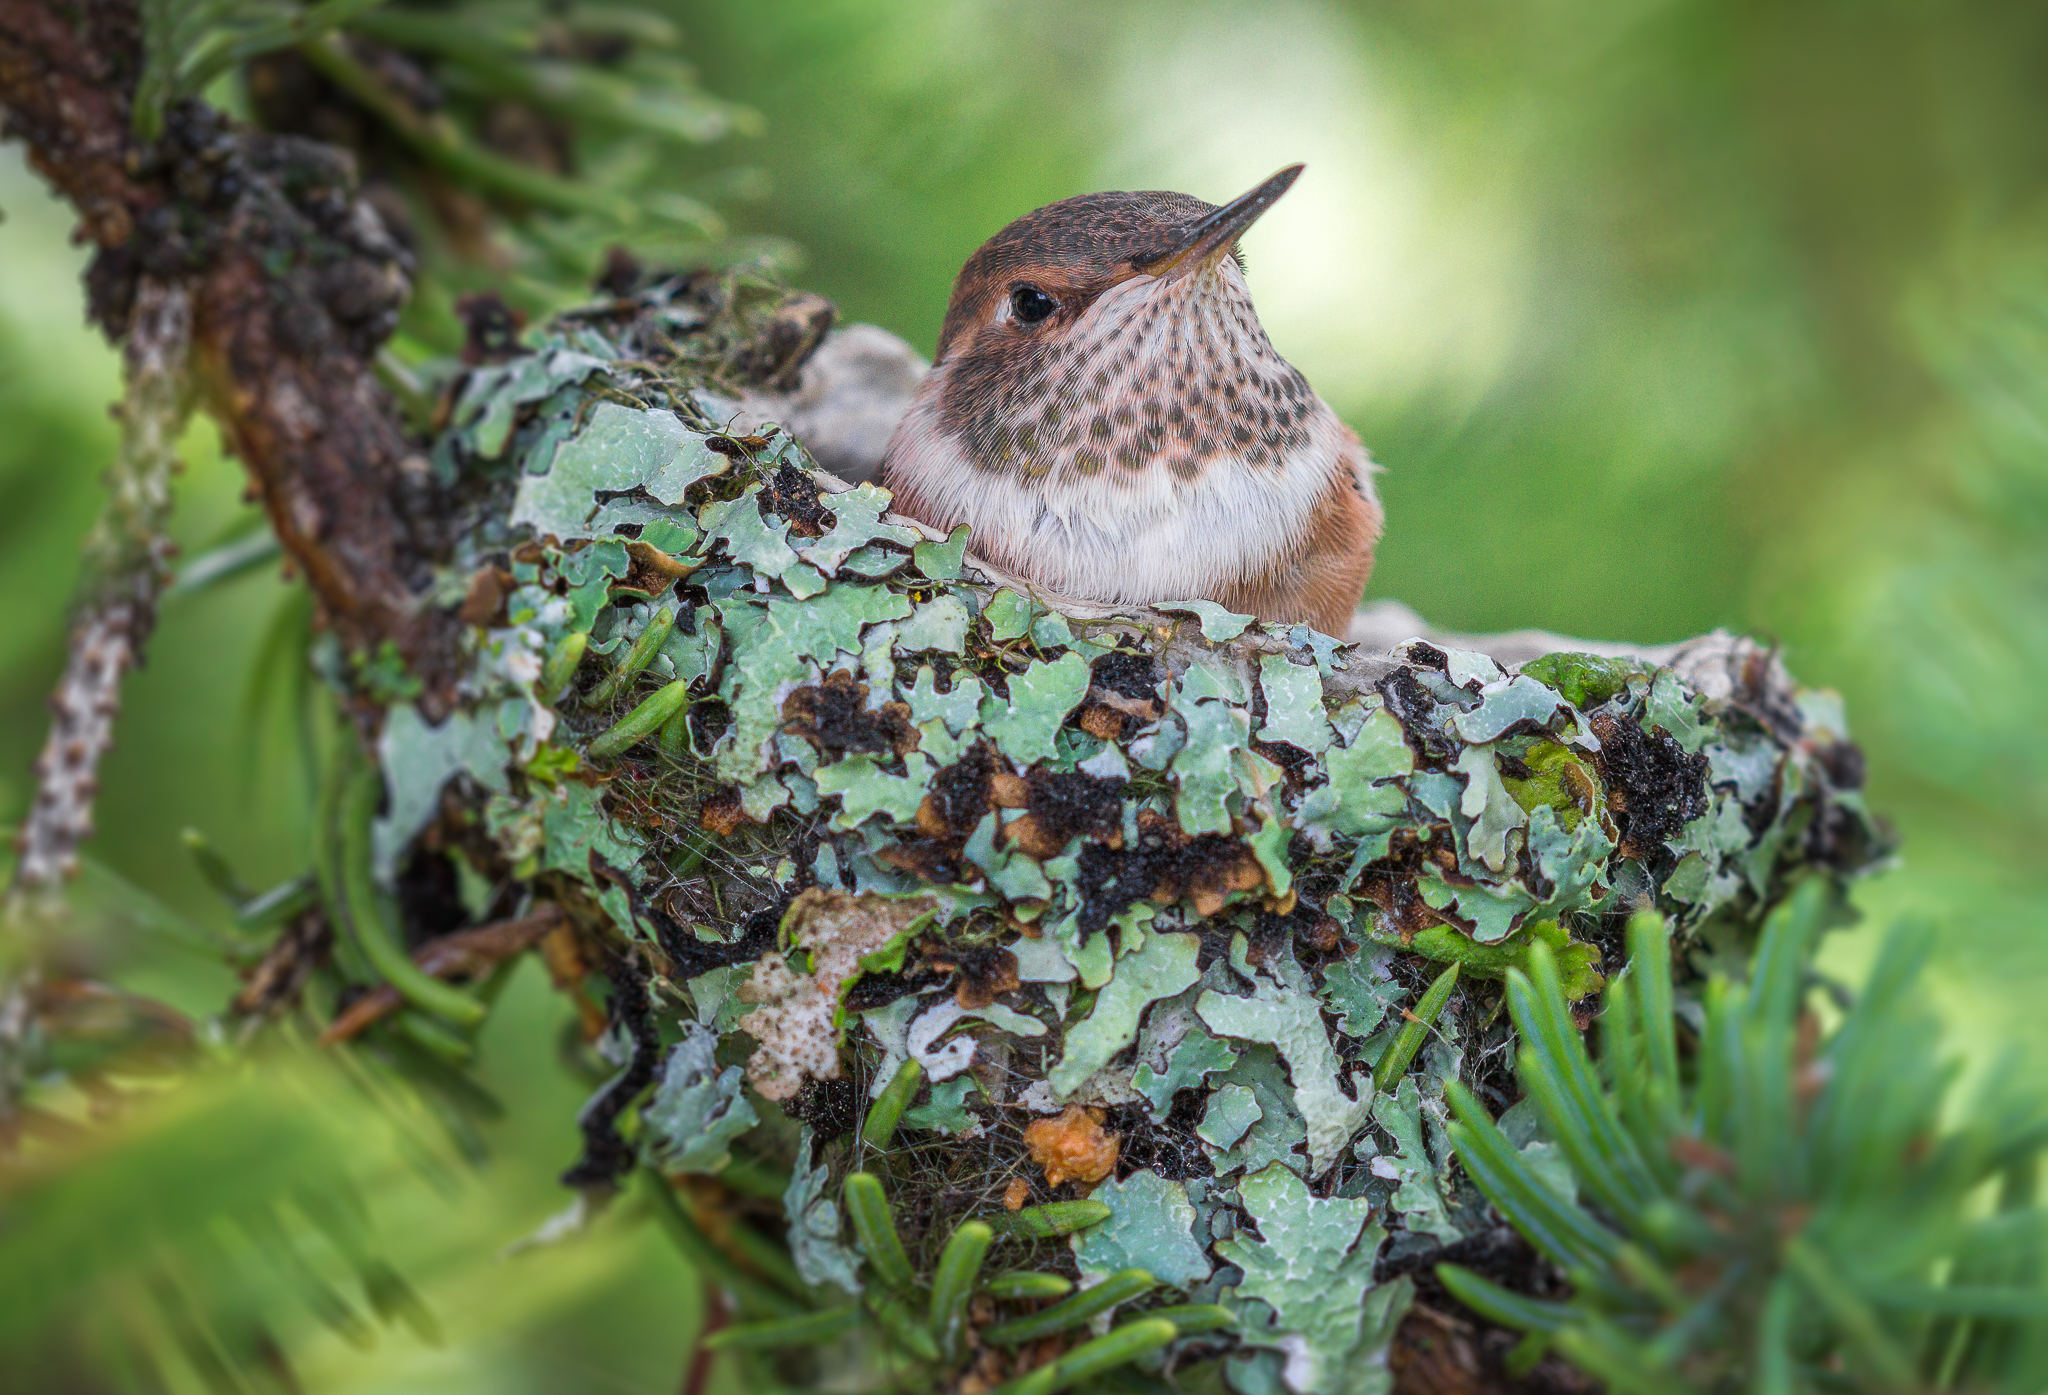 Canadian hummingbirds must have trees for nesting and resting. © Nadia Boudreau, CWF Photo Club